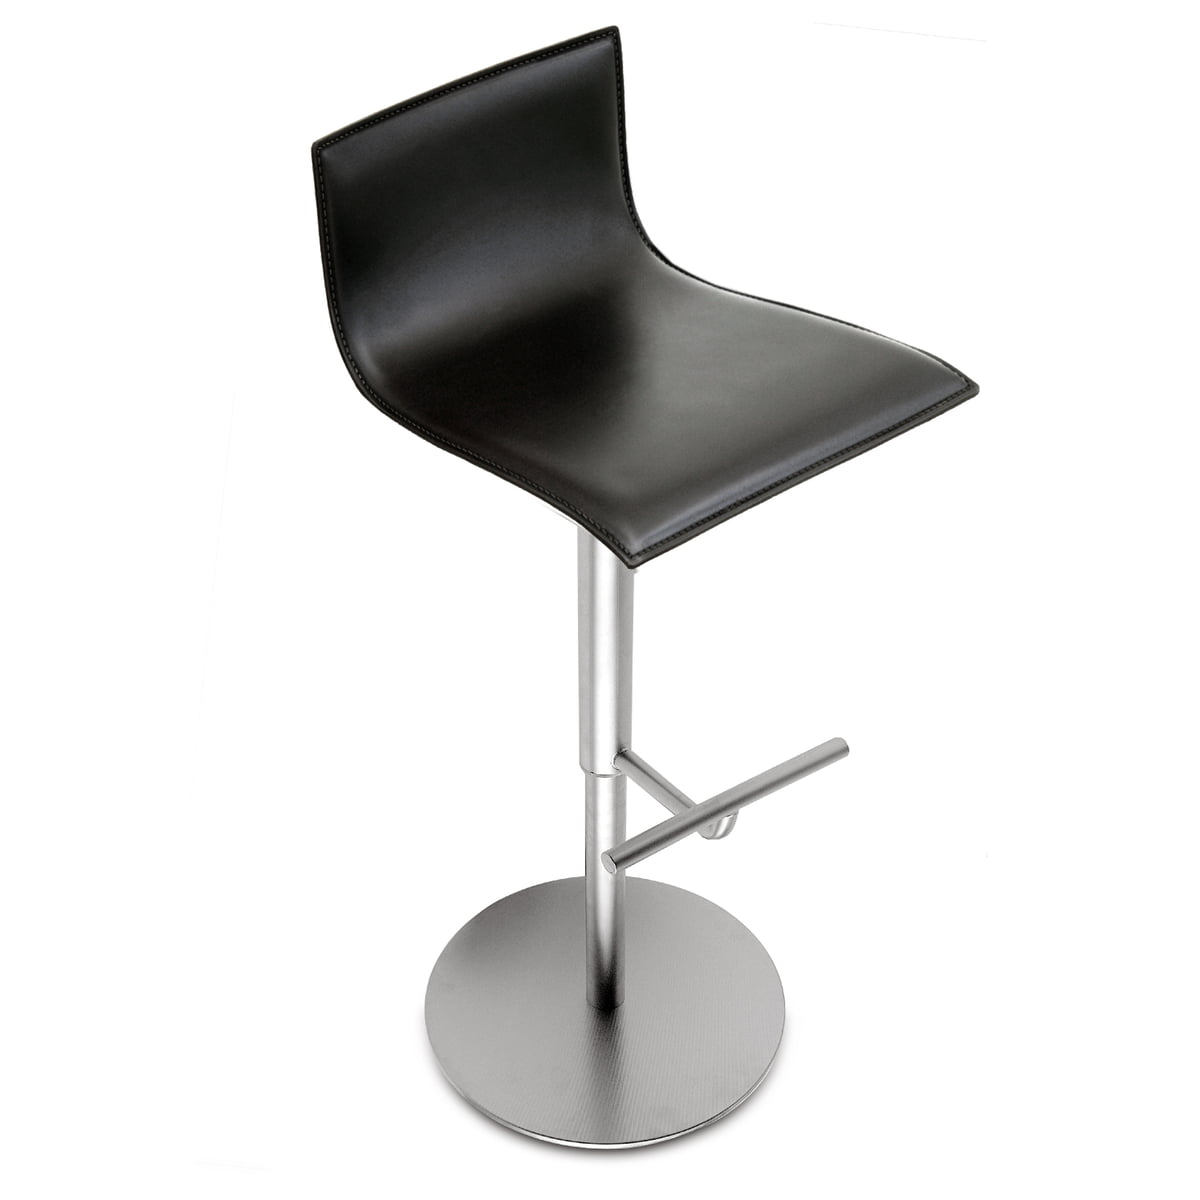 Pleasing La Palma Thin Bar Stool 70 95 Cm Total Height White Lacquered Frame Stainless Steel Squirreltailoven Fun Painted Chair Ideas Images Squirreltailovenorg